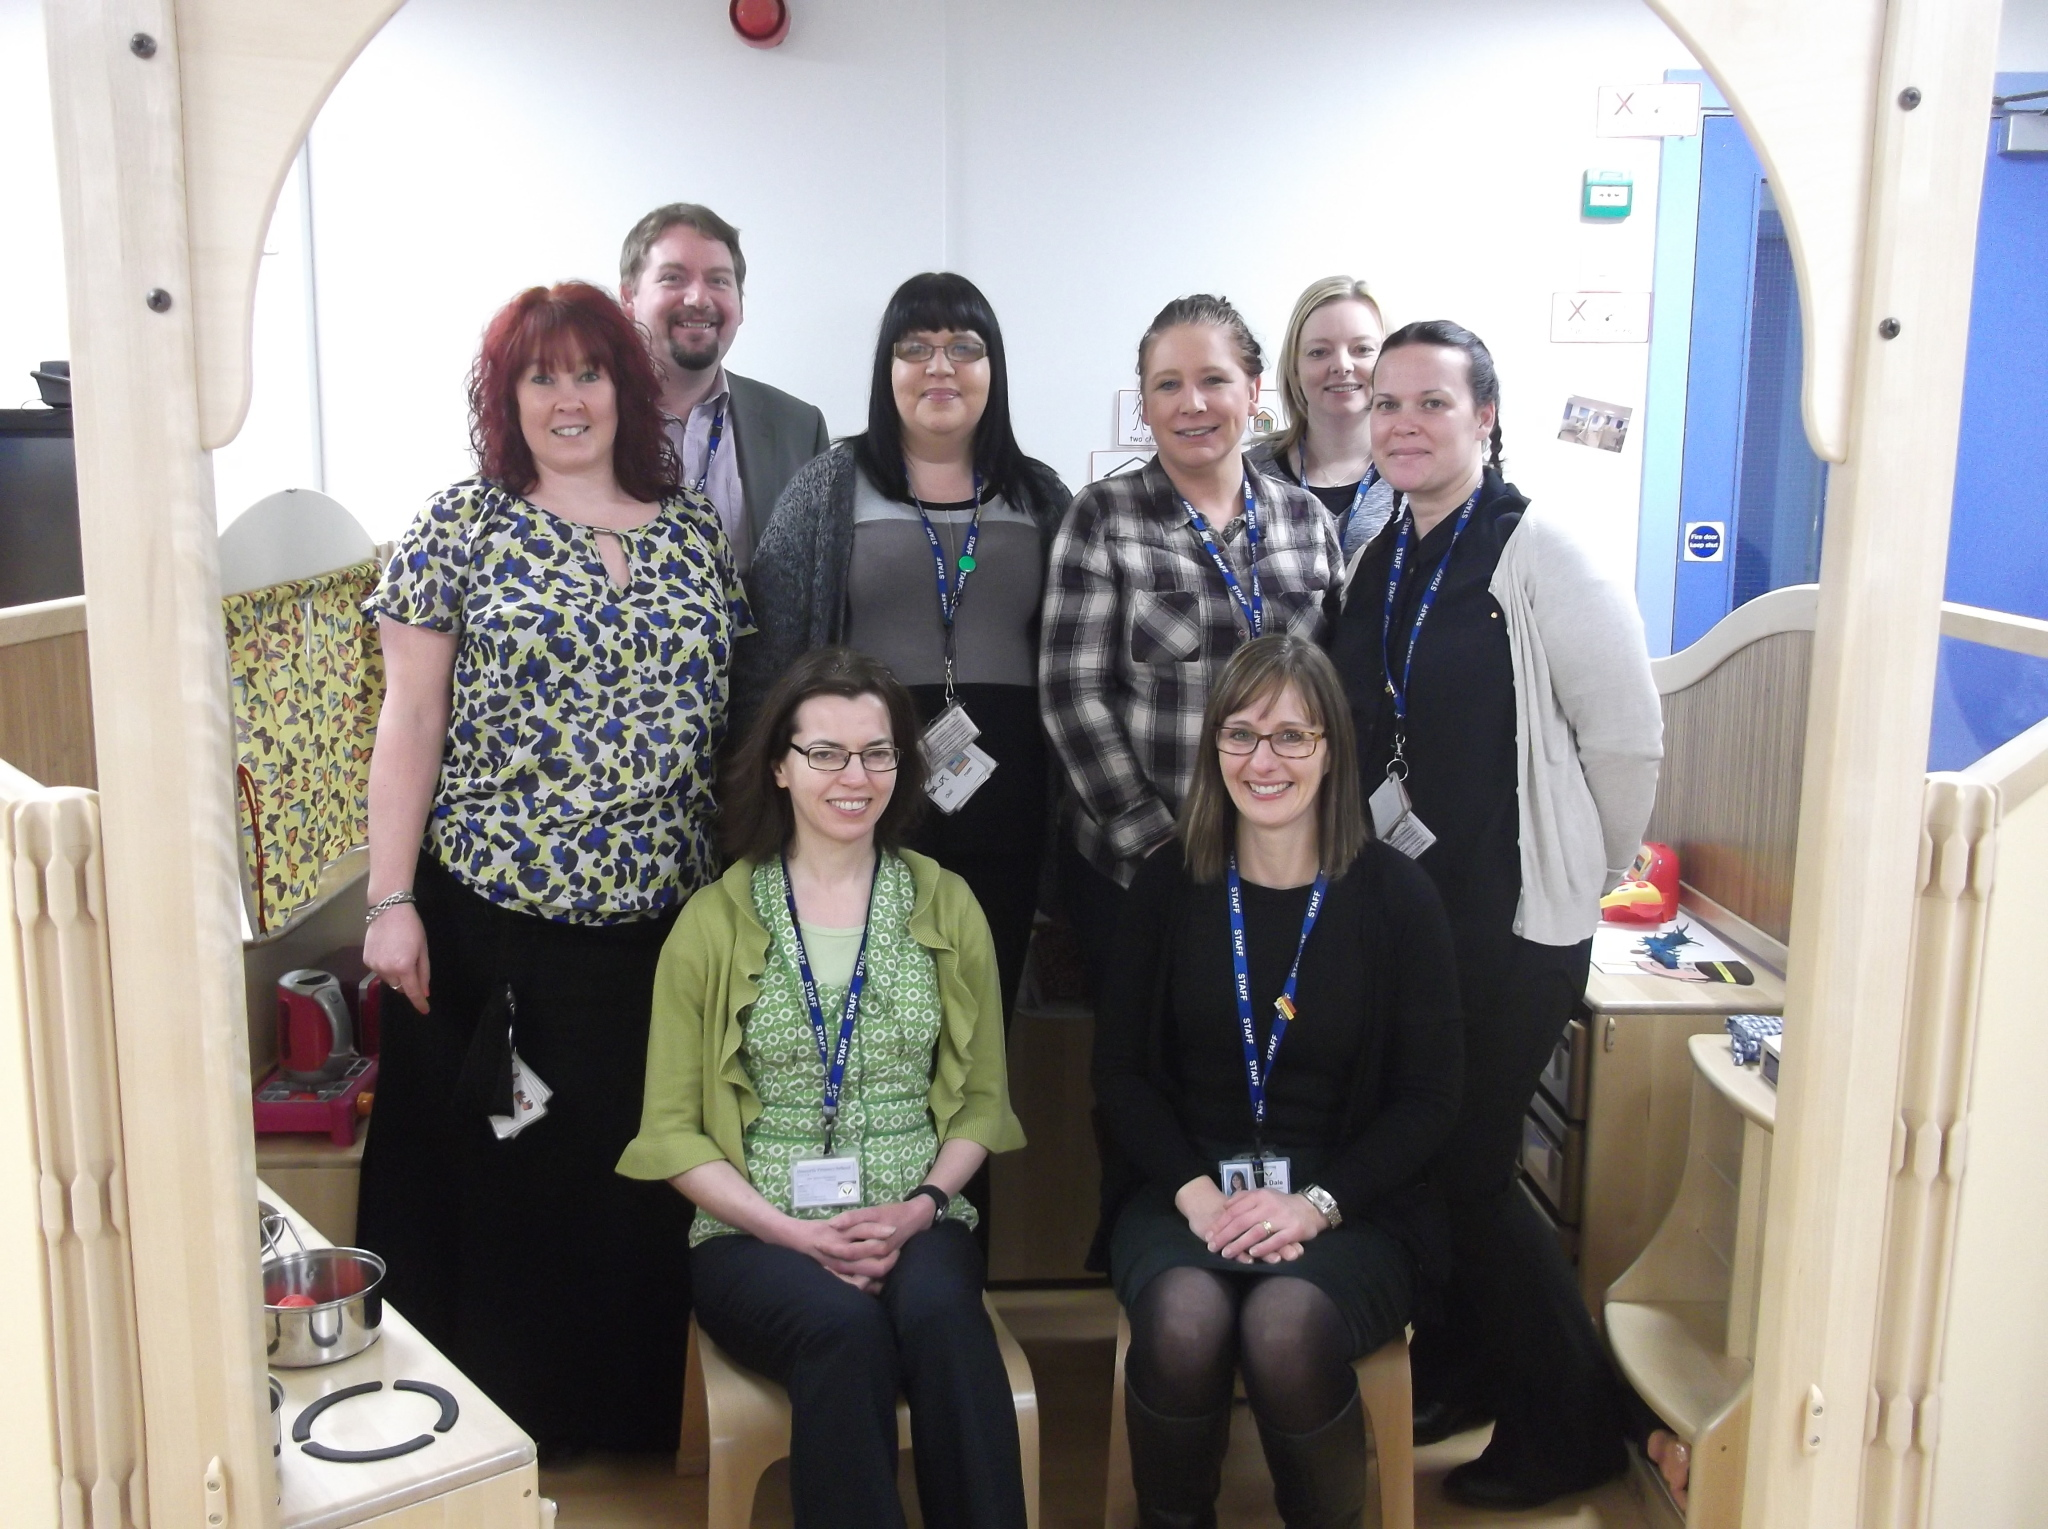 Haworth Primary School's specialist provision team to help pupils with autism